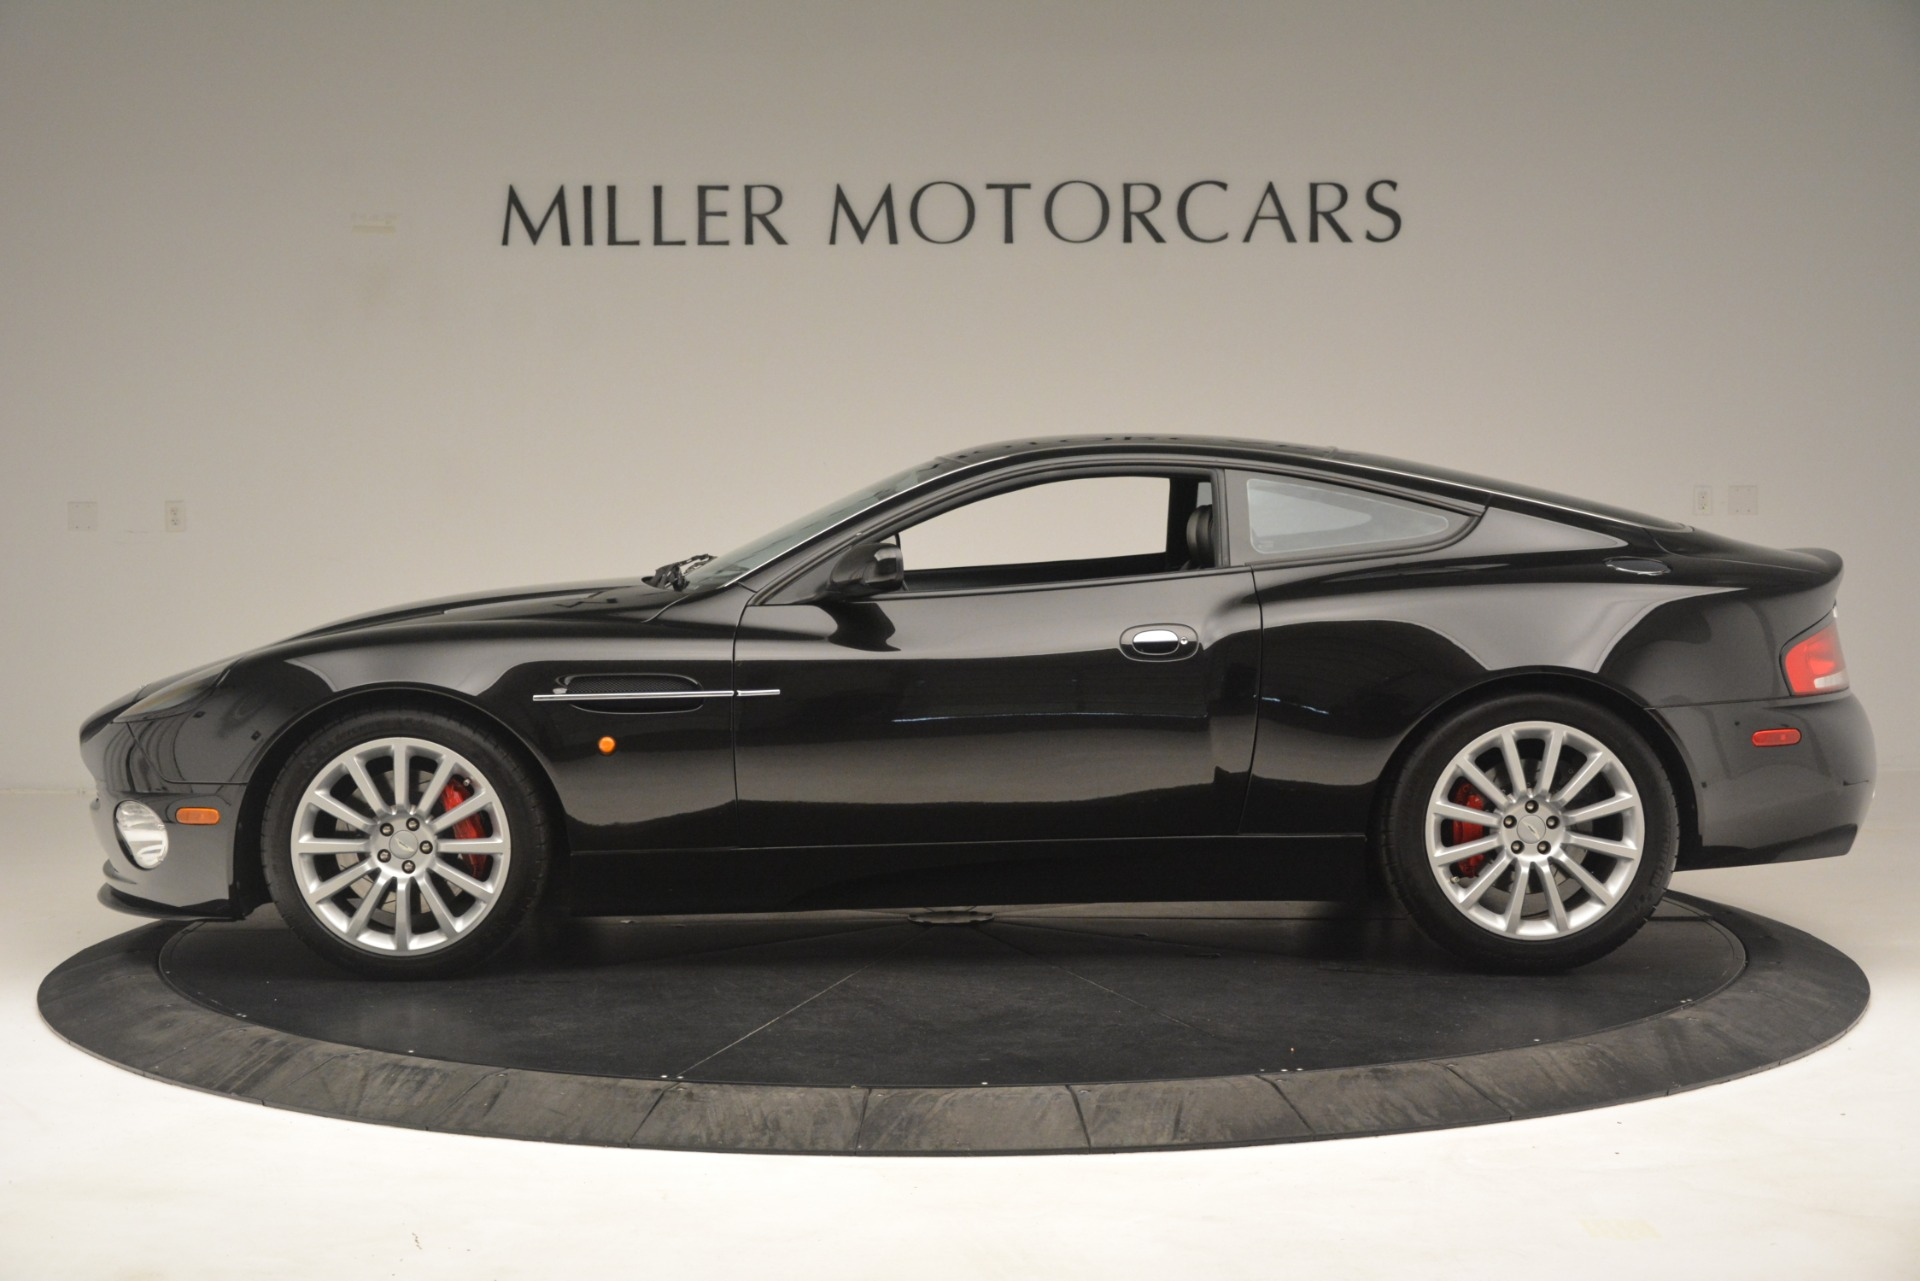 Used 2004 Aston Martin V12 Vanquish  For Sale In Westport, CT 3160_p4